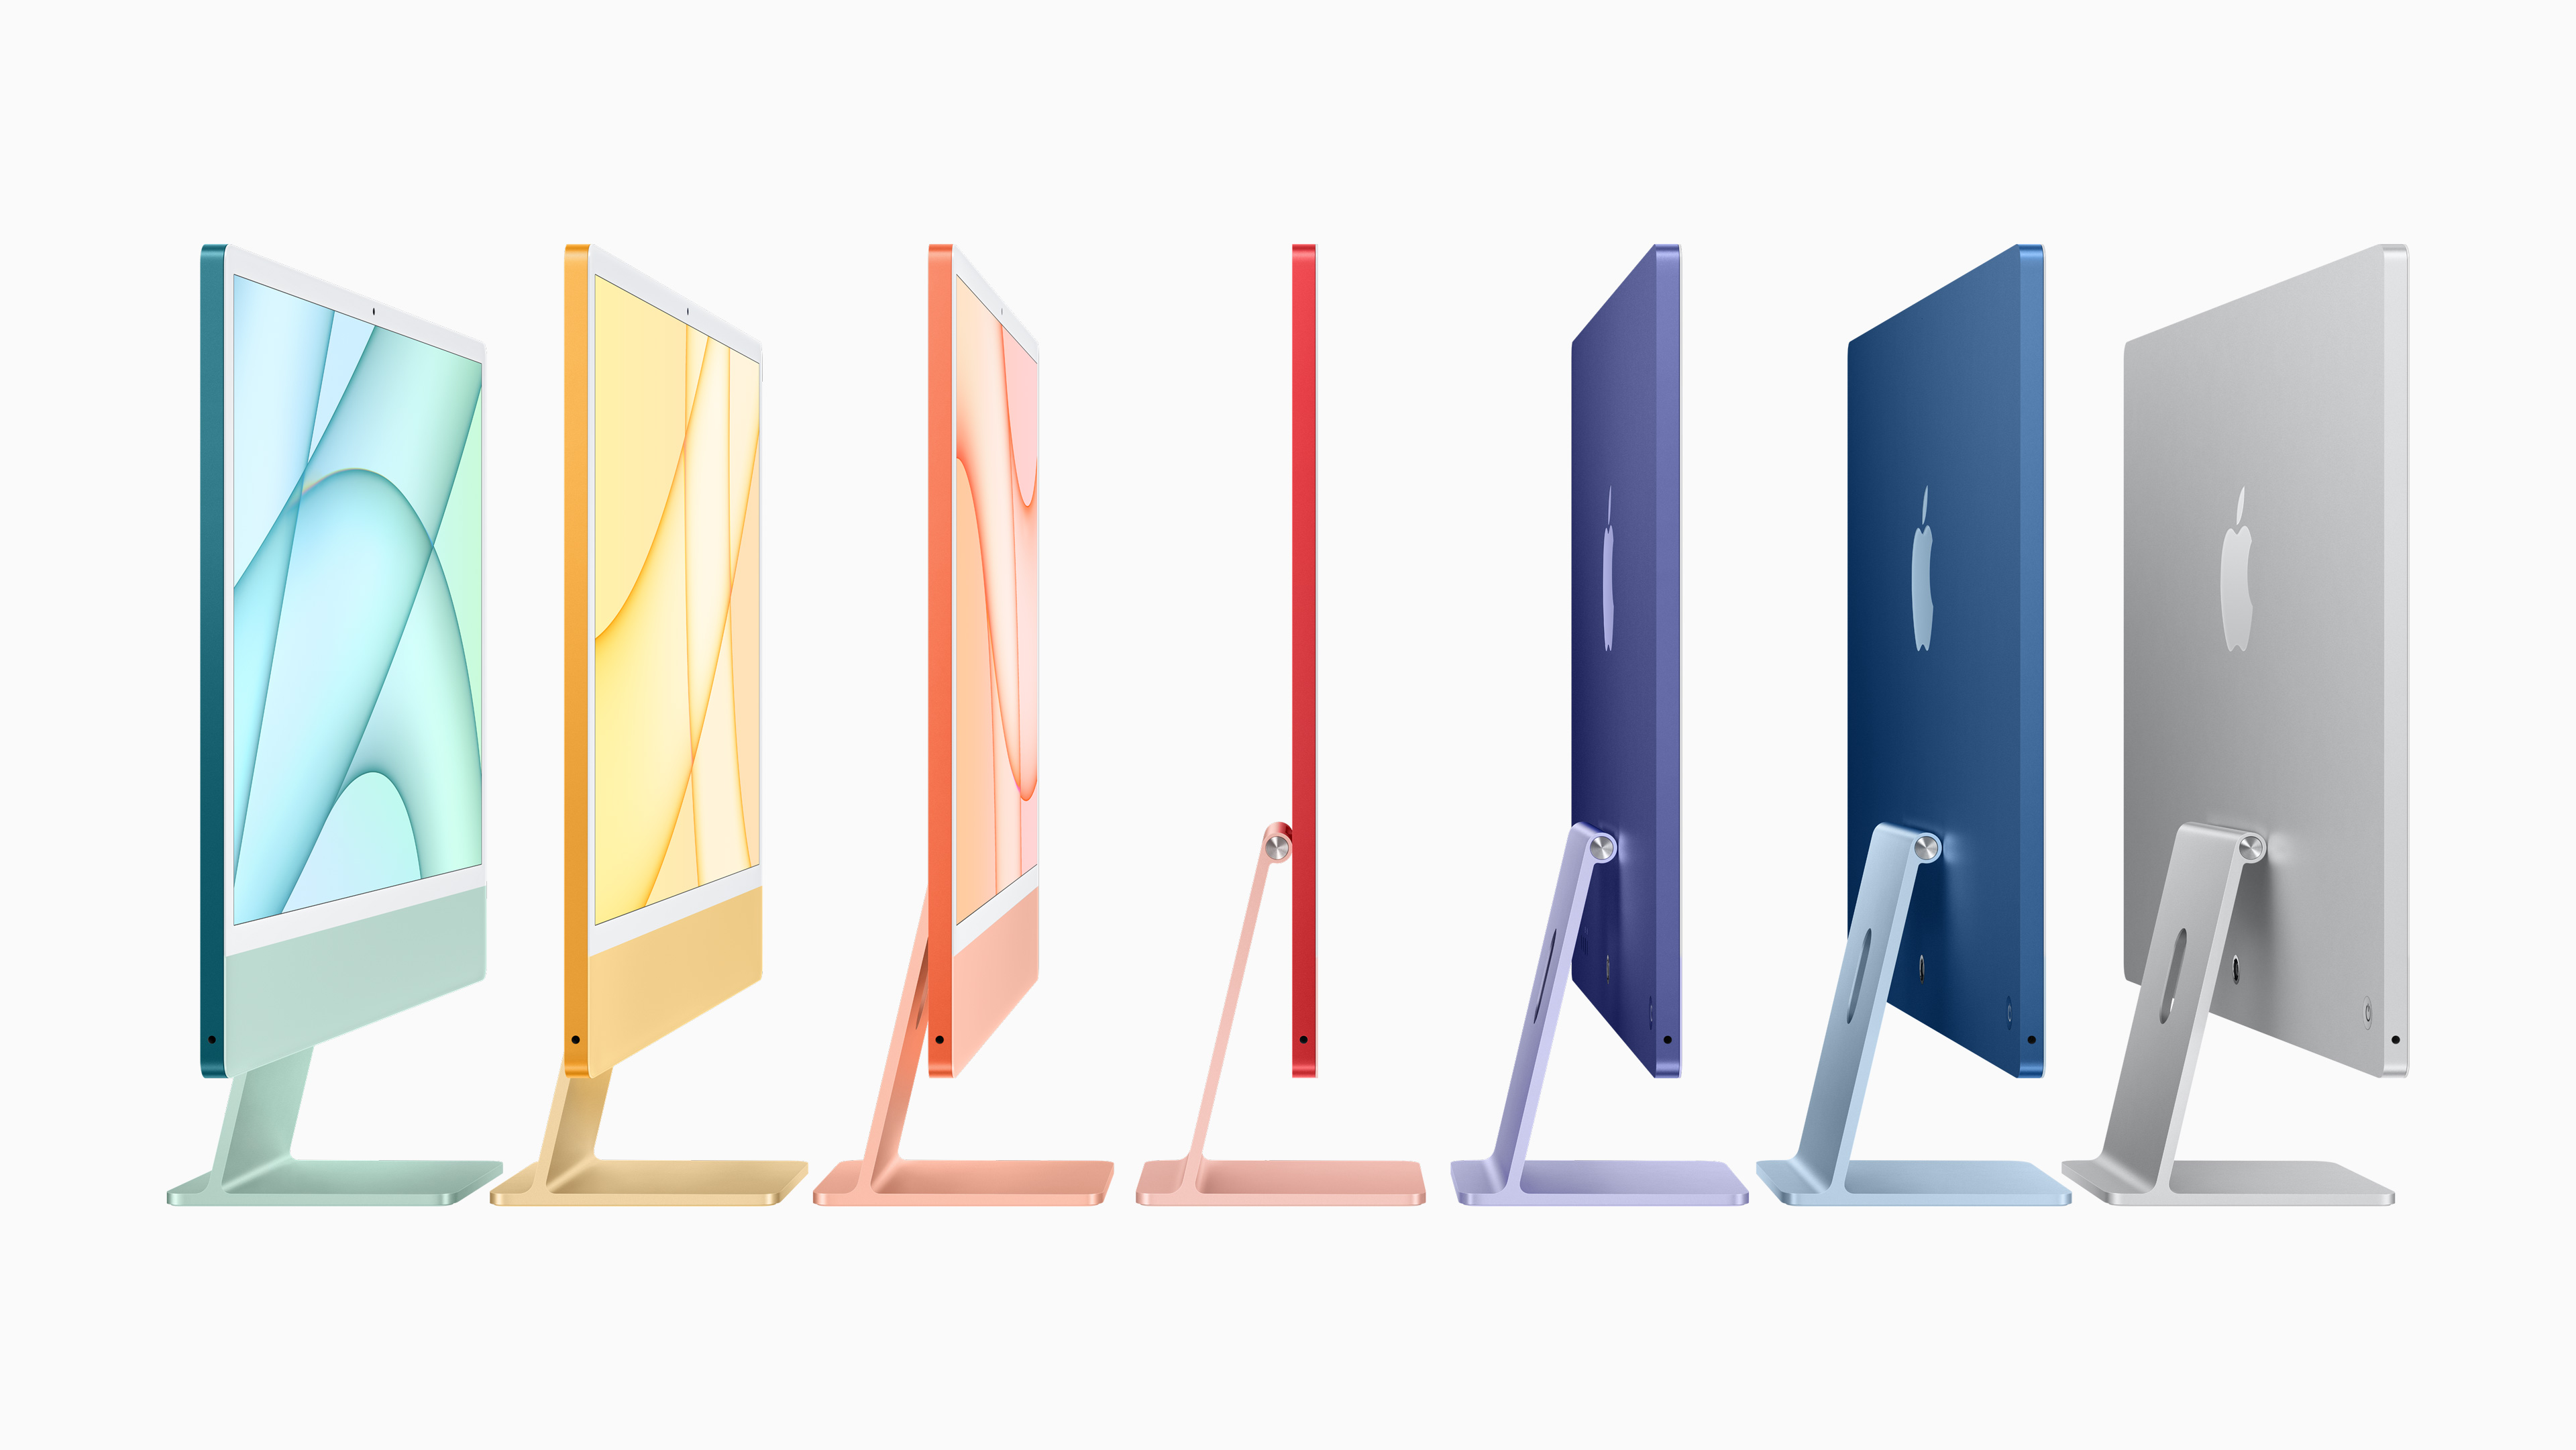 24-inch Apple silicon iMac lineup in all colors, shown from the side